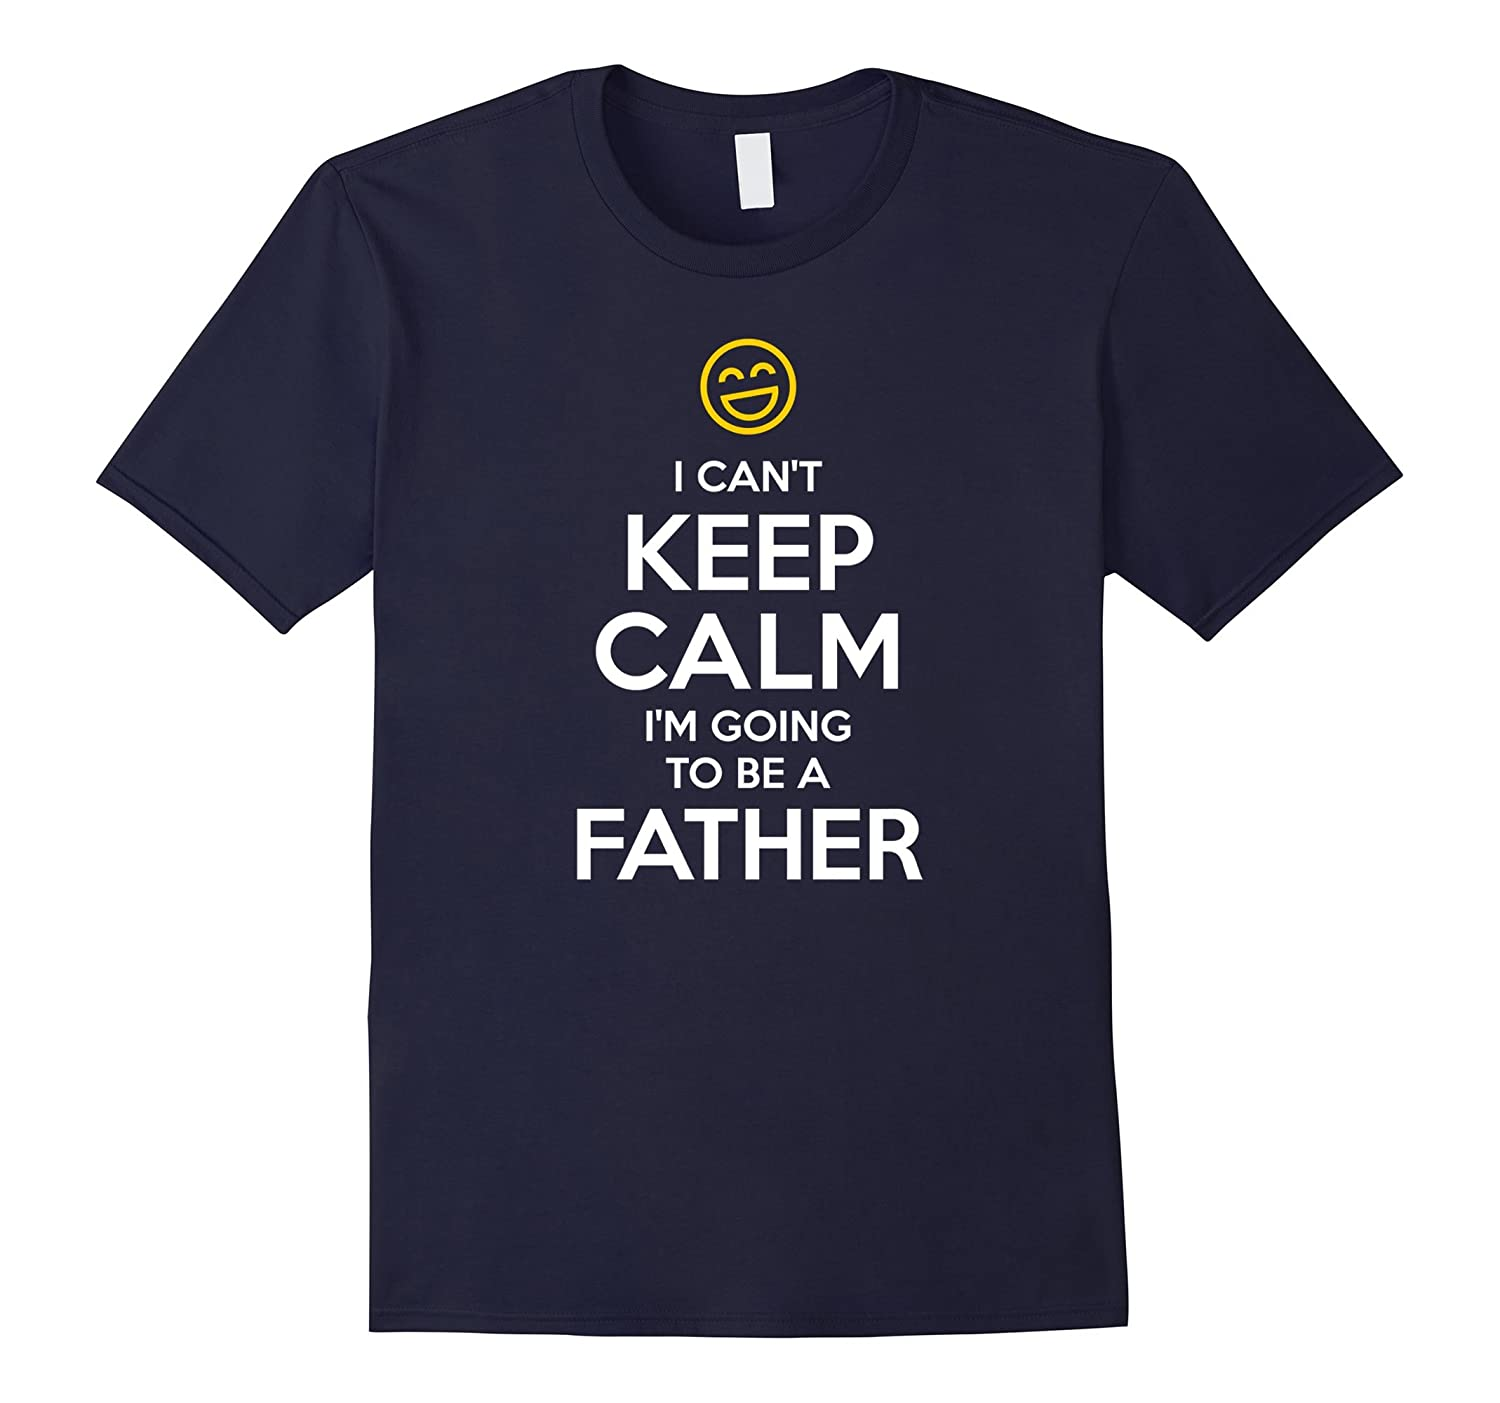 'I Can't Keep Calm, I'm Going To Be A Father' - T-Shirt-T-Shirt